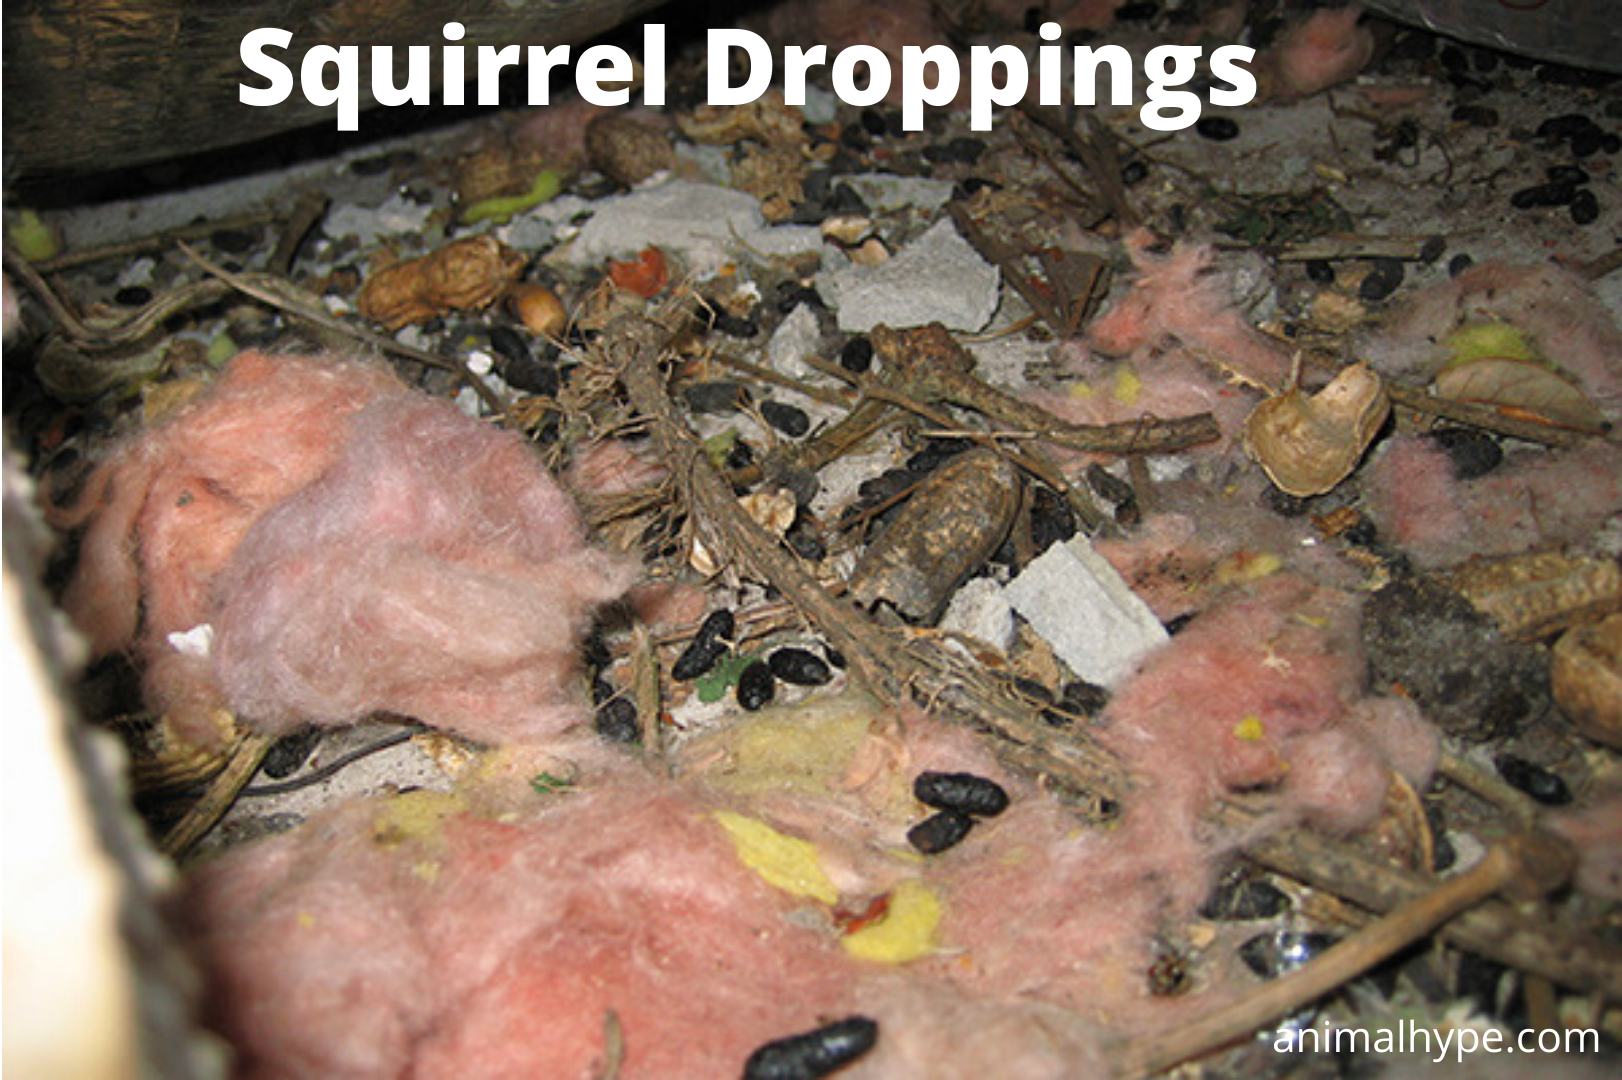 Squirrel Droppings